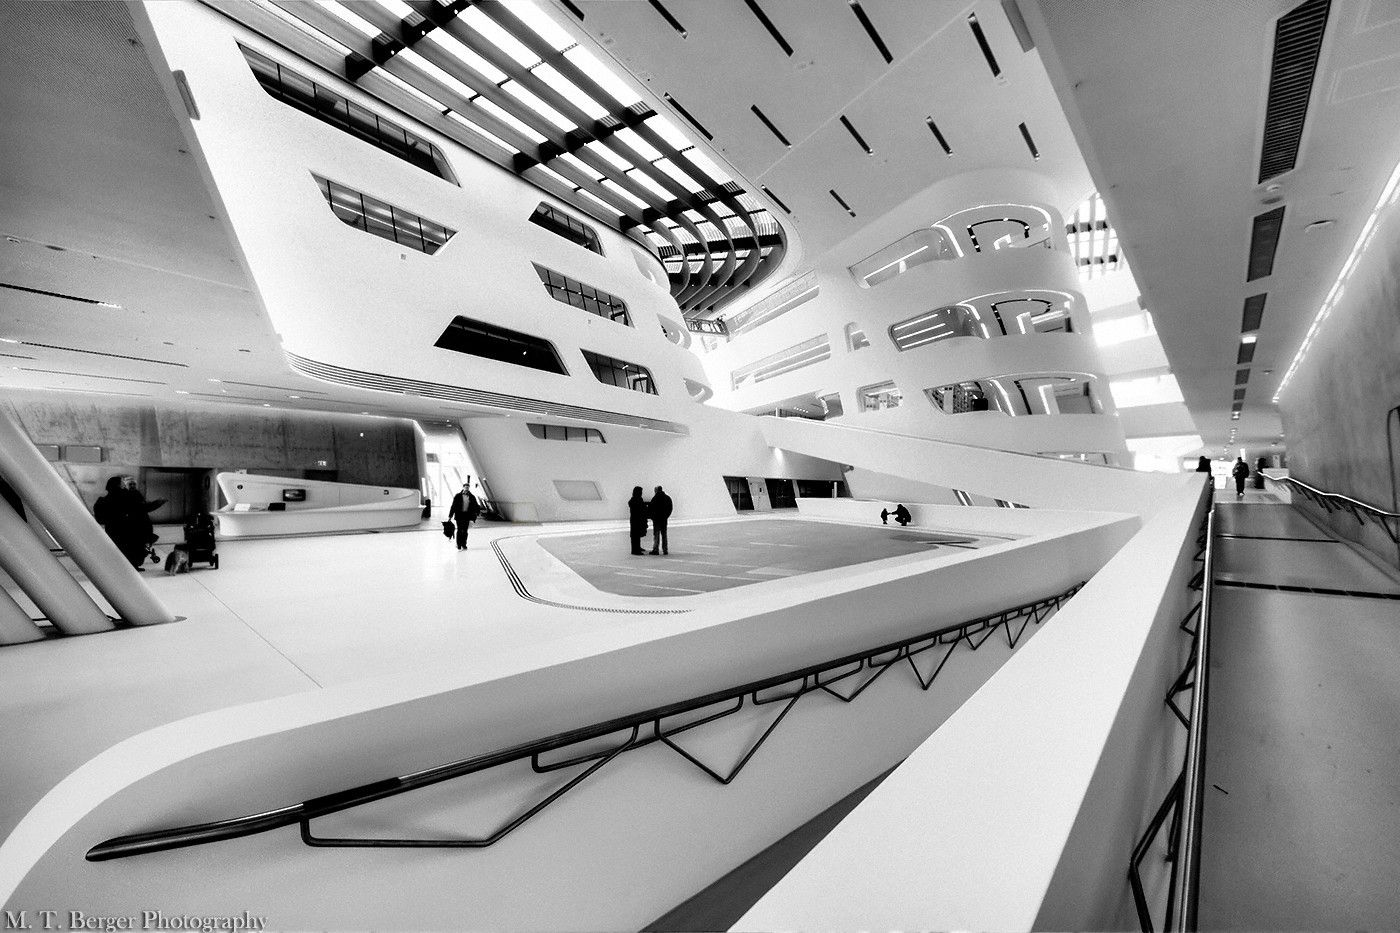 Inside the University of Economics and Business in Vienna, Austria.